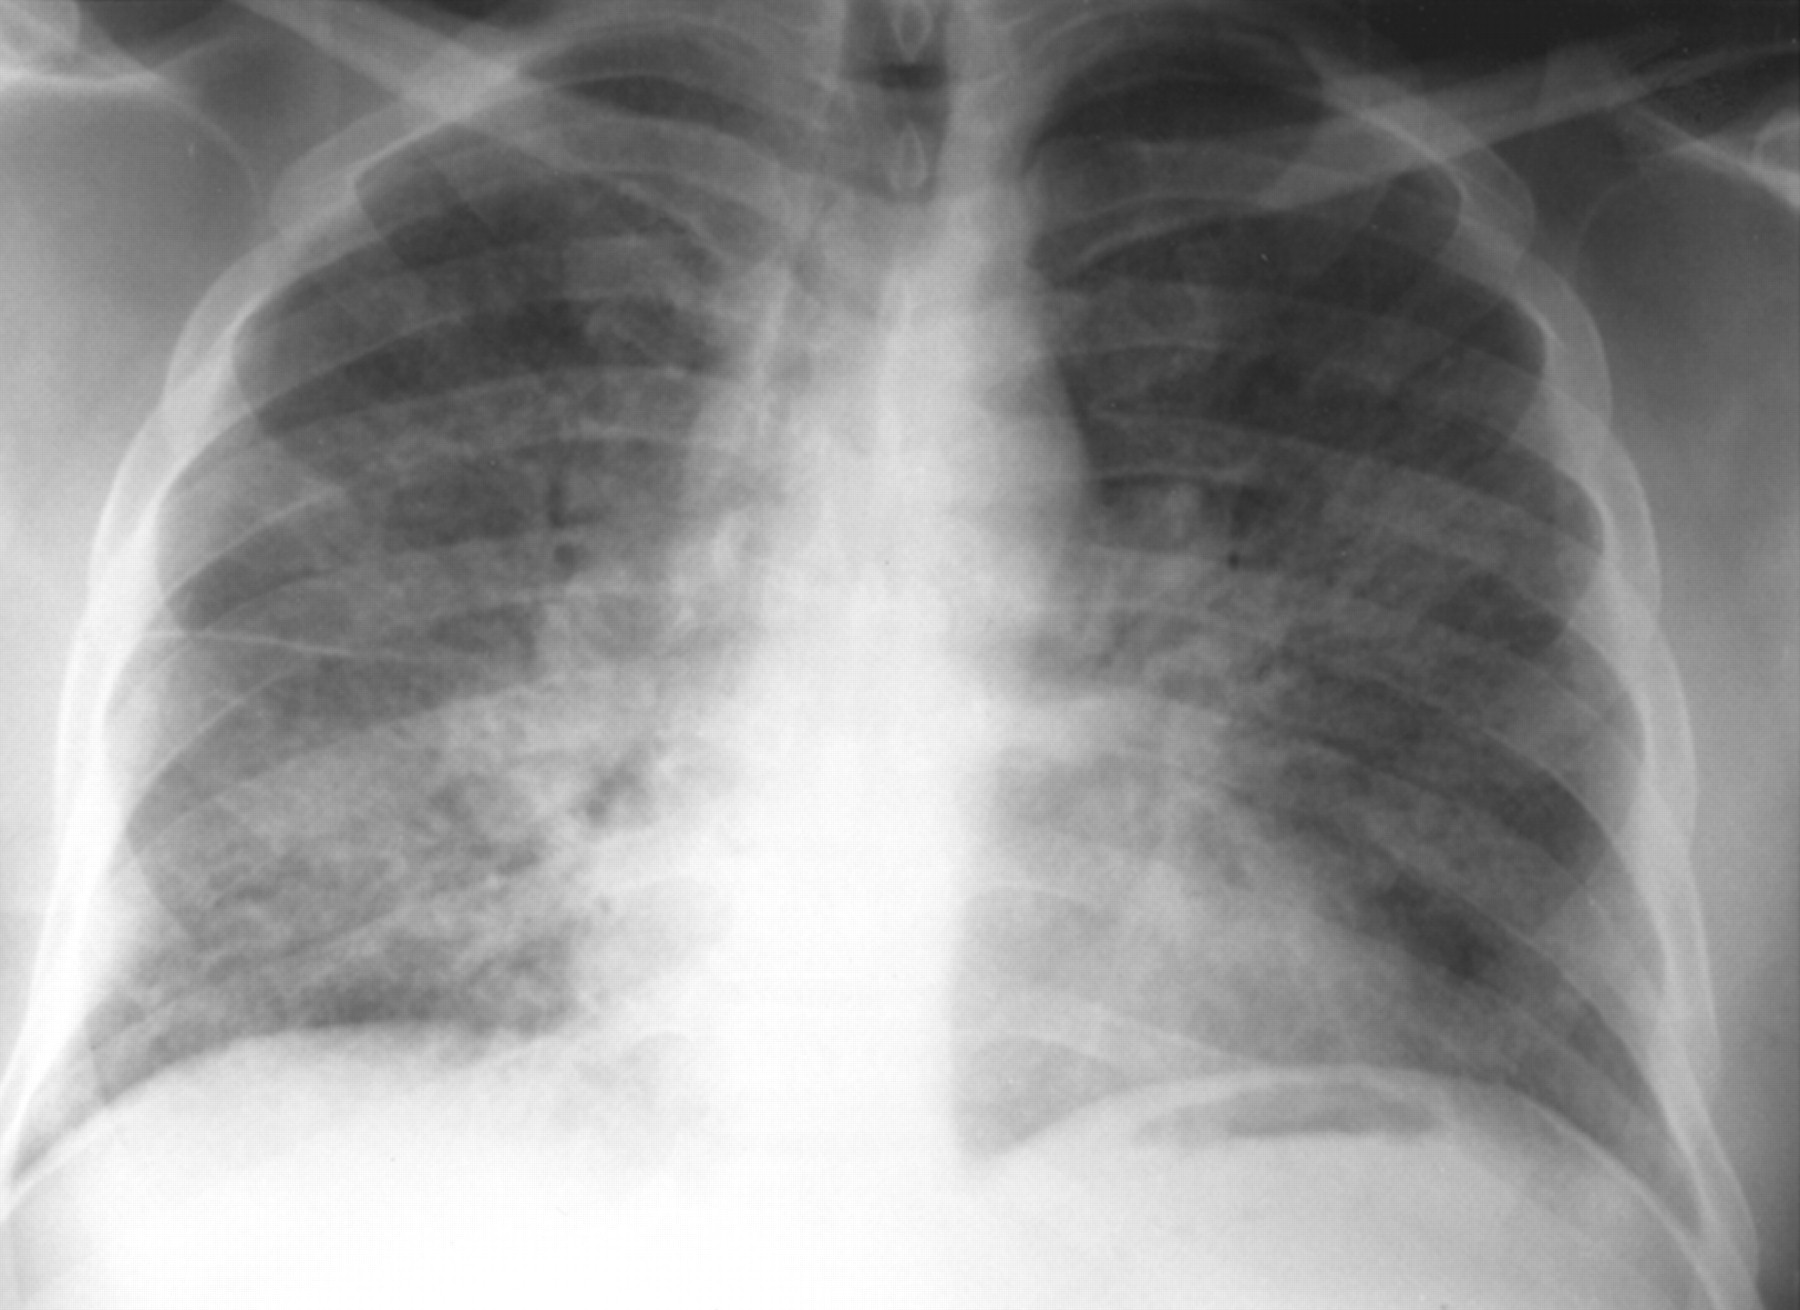 Pulmonary Sarcoidosis And The Acute Respiratory Distress